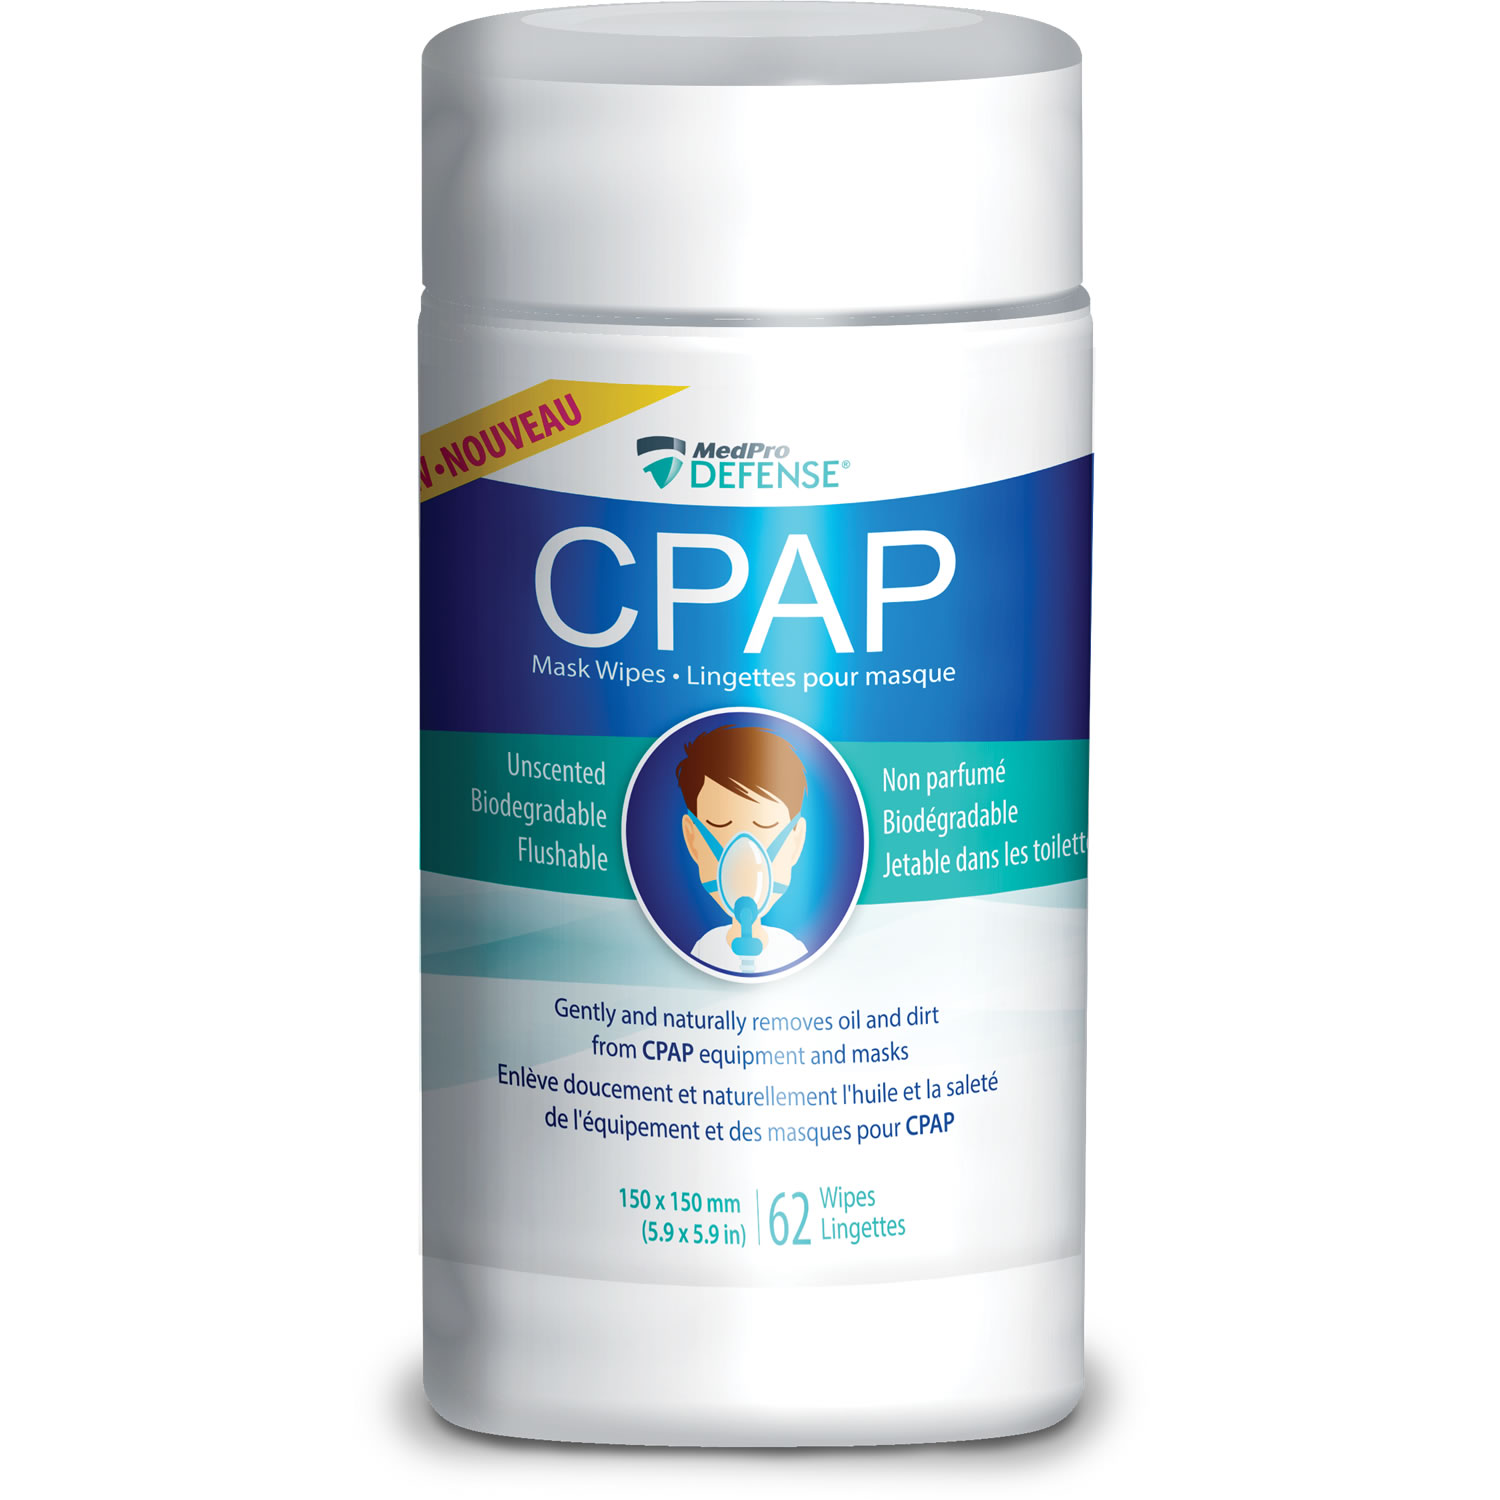 MedPro Defense® CPAP Mask Wipes